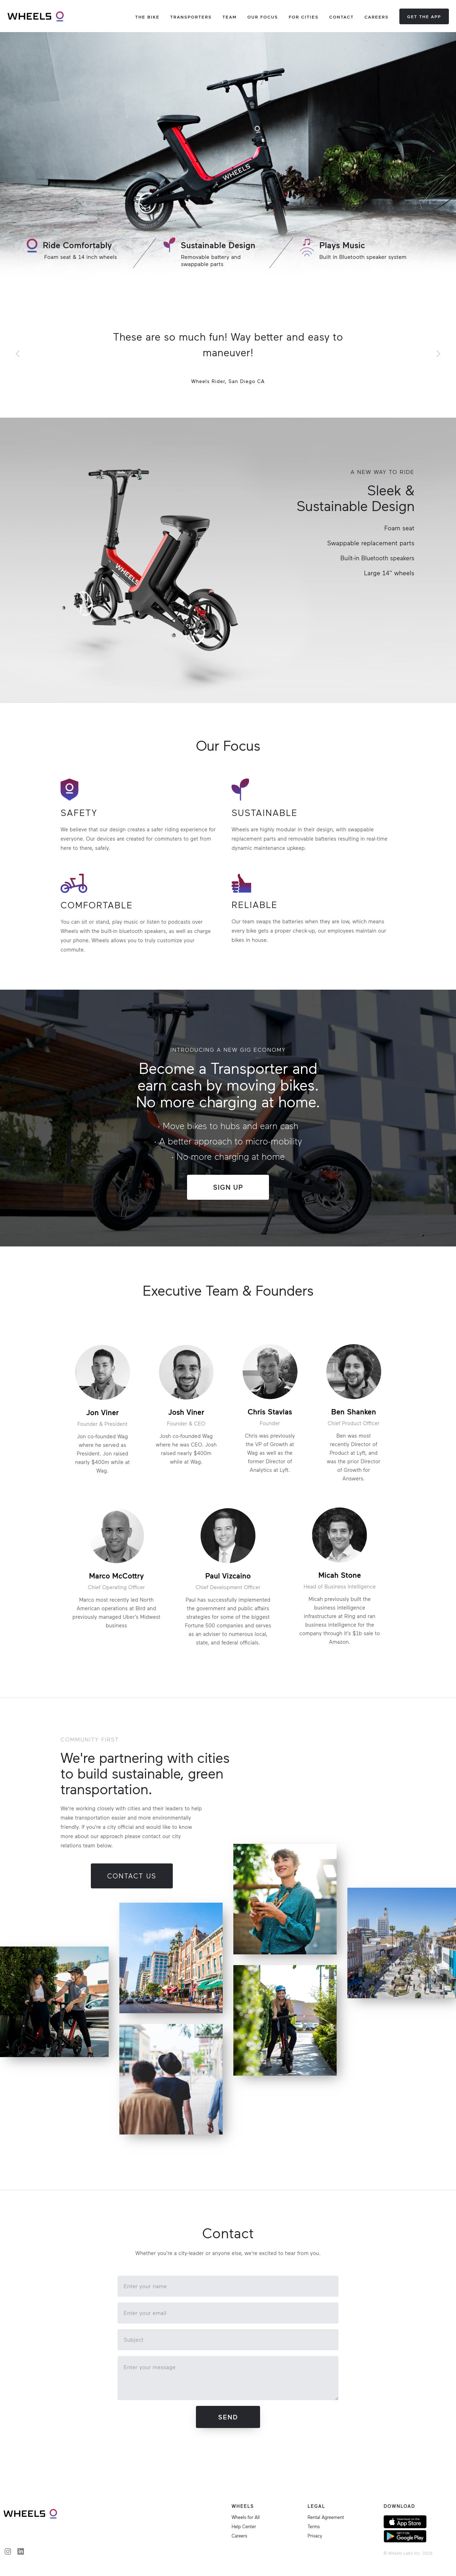 Example of Design for Autos & Vehicles, Mobile Landing Page by takewheels.com | Mobile Landing Page Design